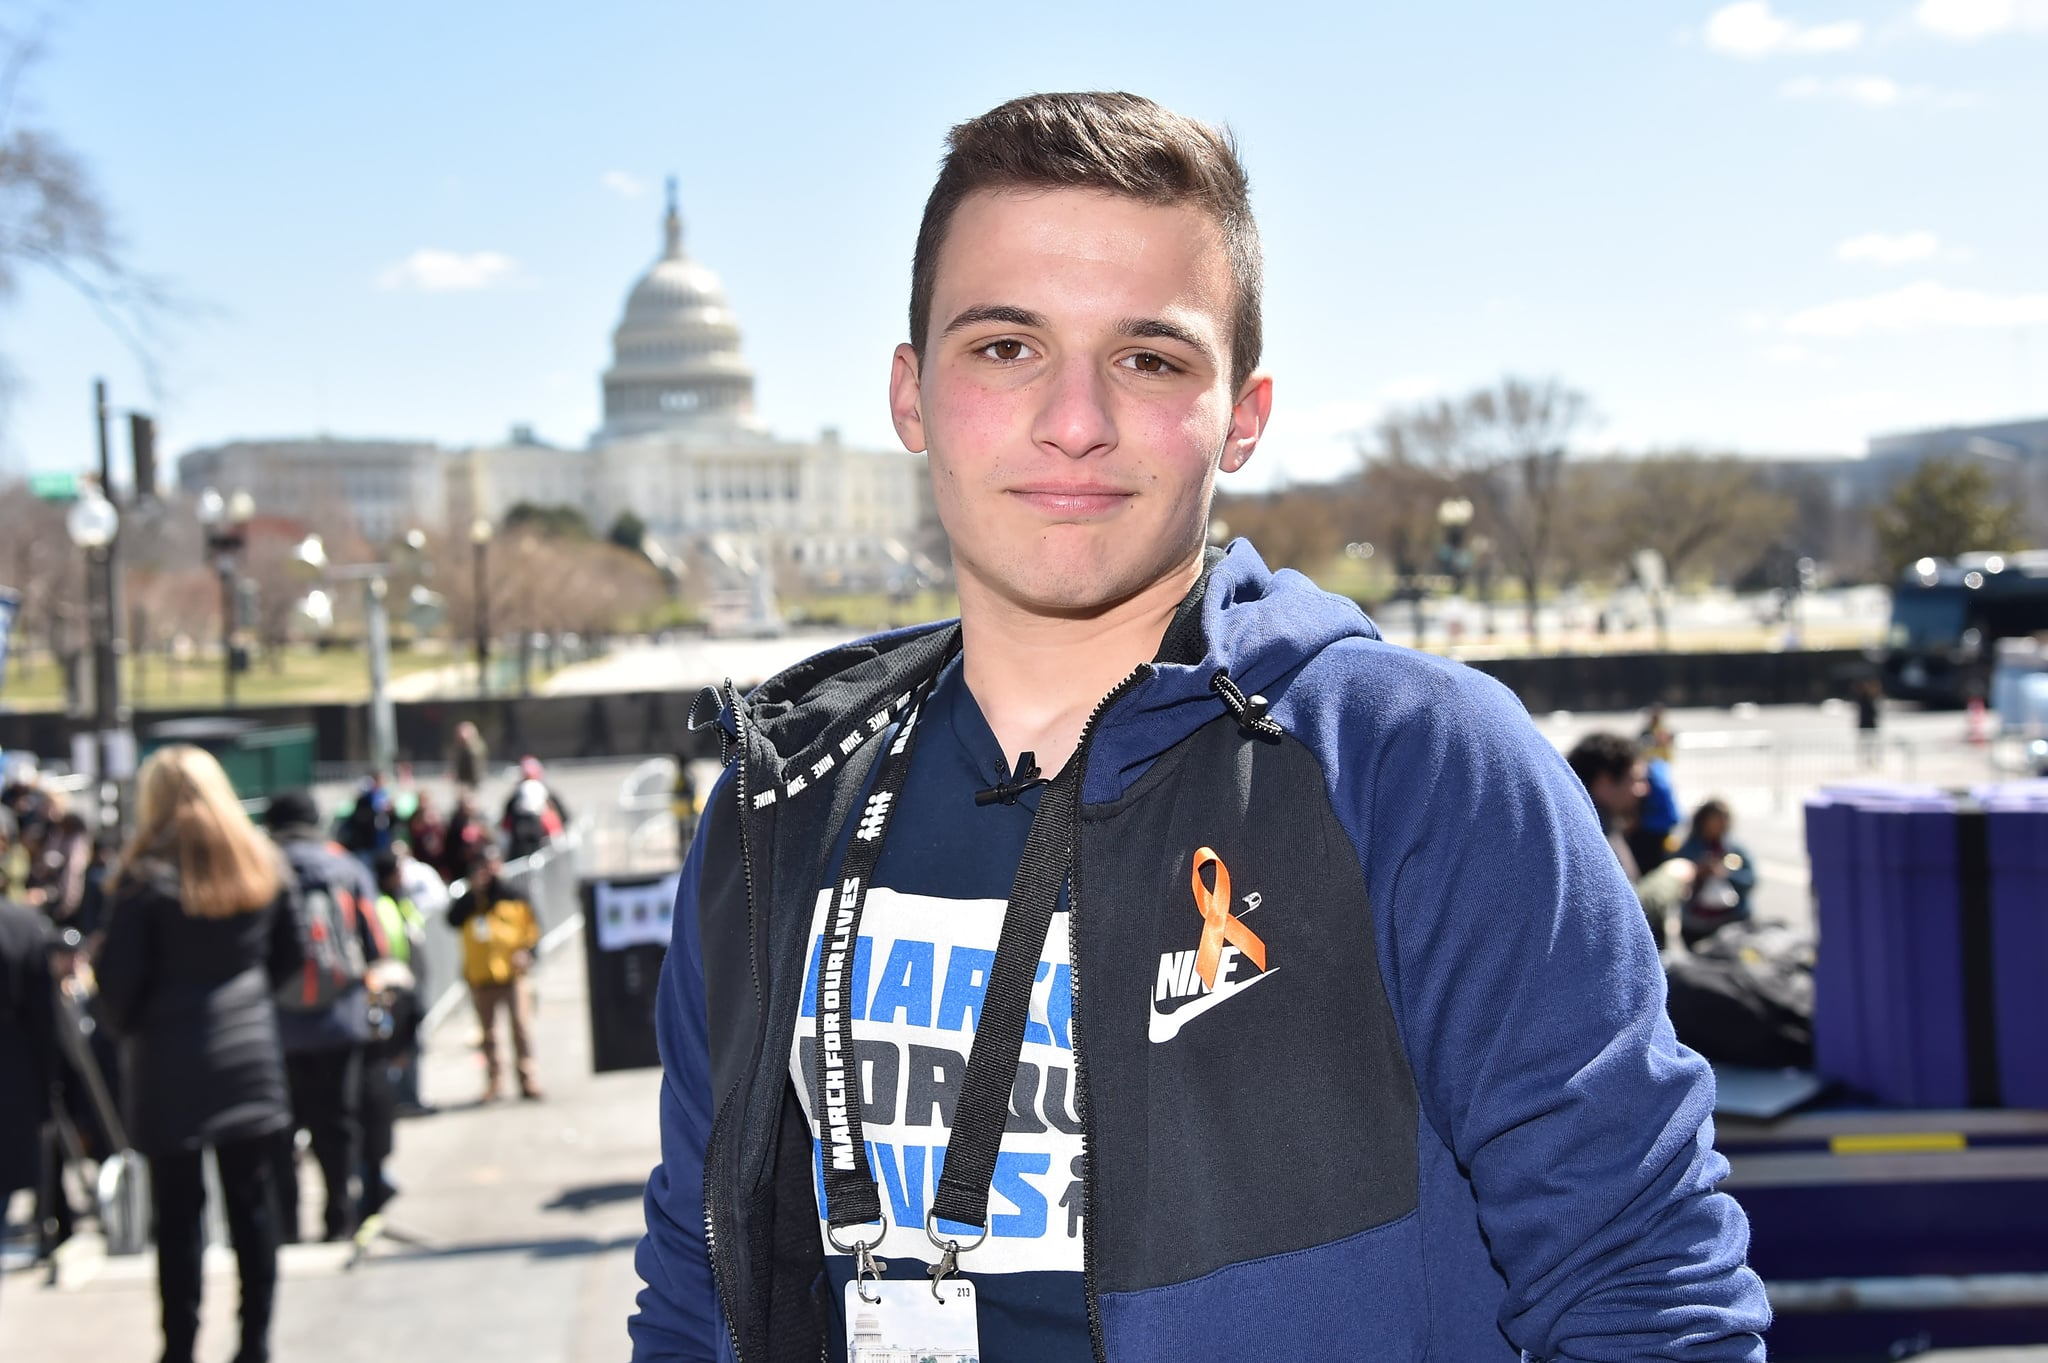 WASHINGTON, DC - MARCH 24:  Marjory Stoneman Douglas High School student Cameron Kasky attends March For Our Lives on March 24, 2018 in Washington, DC.  (Photo by Kevin Mazur/Getty Images for March For Our Lives)